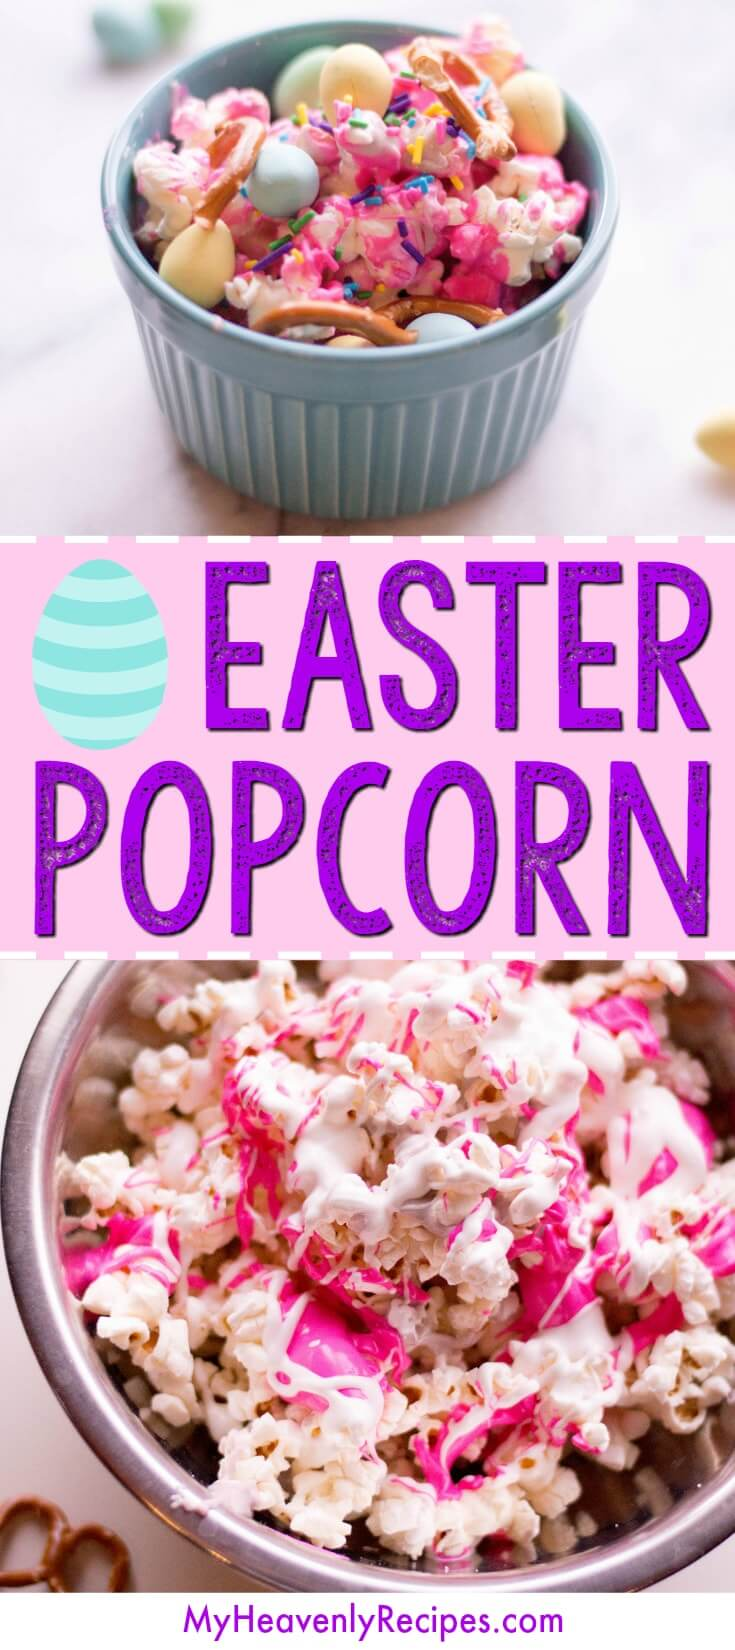 This Easter Popcorn recipe is SO MUCH FUN to make! Make it with your kids, serve it at an Easter gathering, or give it away as a food gift. It's a great flavored popcorn recipe! #popcorn #easter #easterpopcorn #popcornrecipe